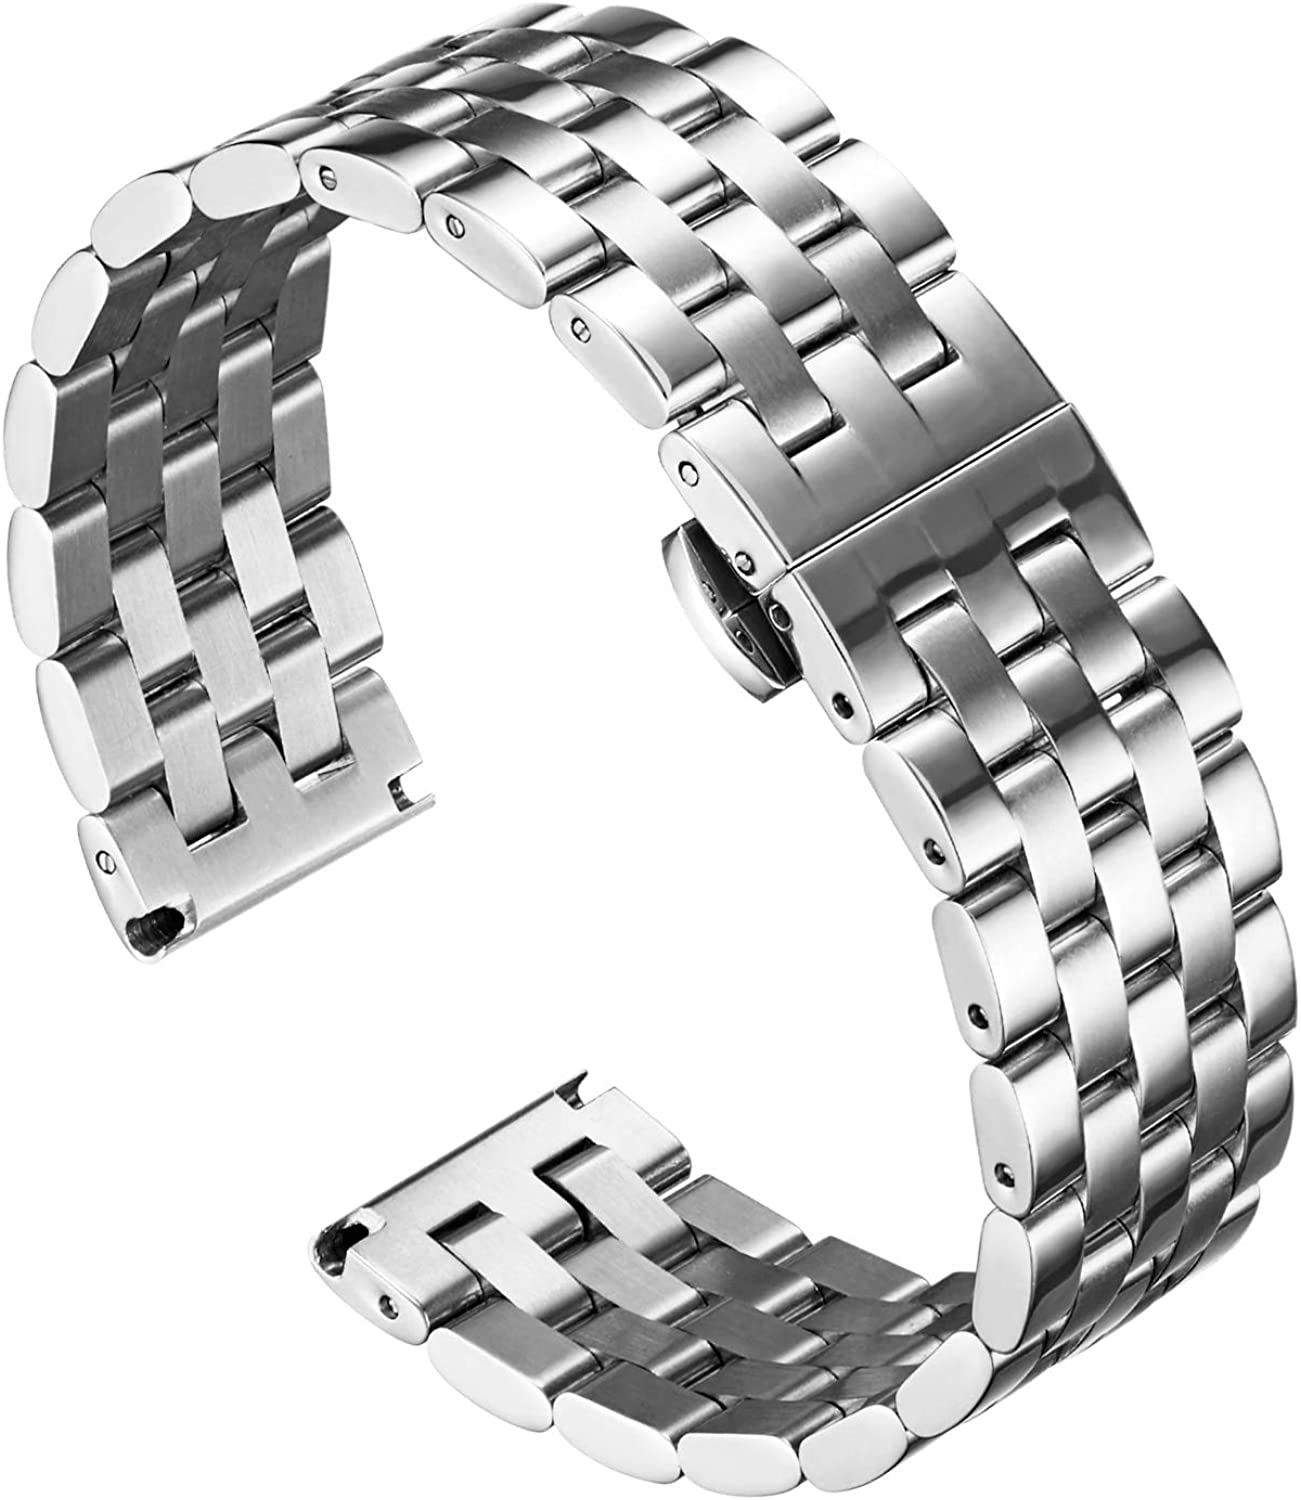 BINLUN Stainless Steel Watch New Free Shipping Bands - Minneapolis Mall End Straight with Curved